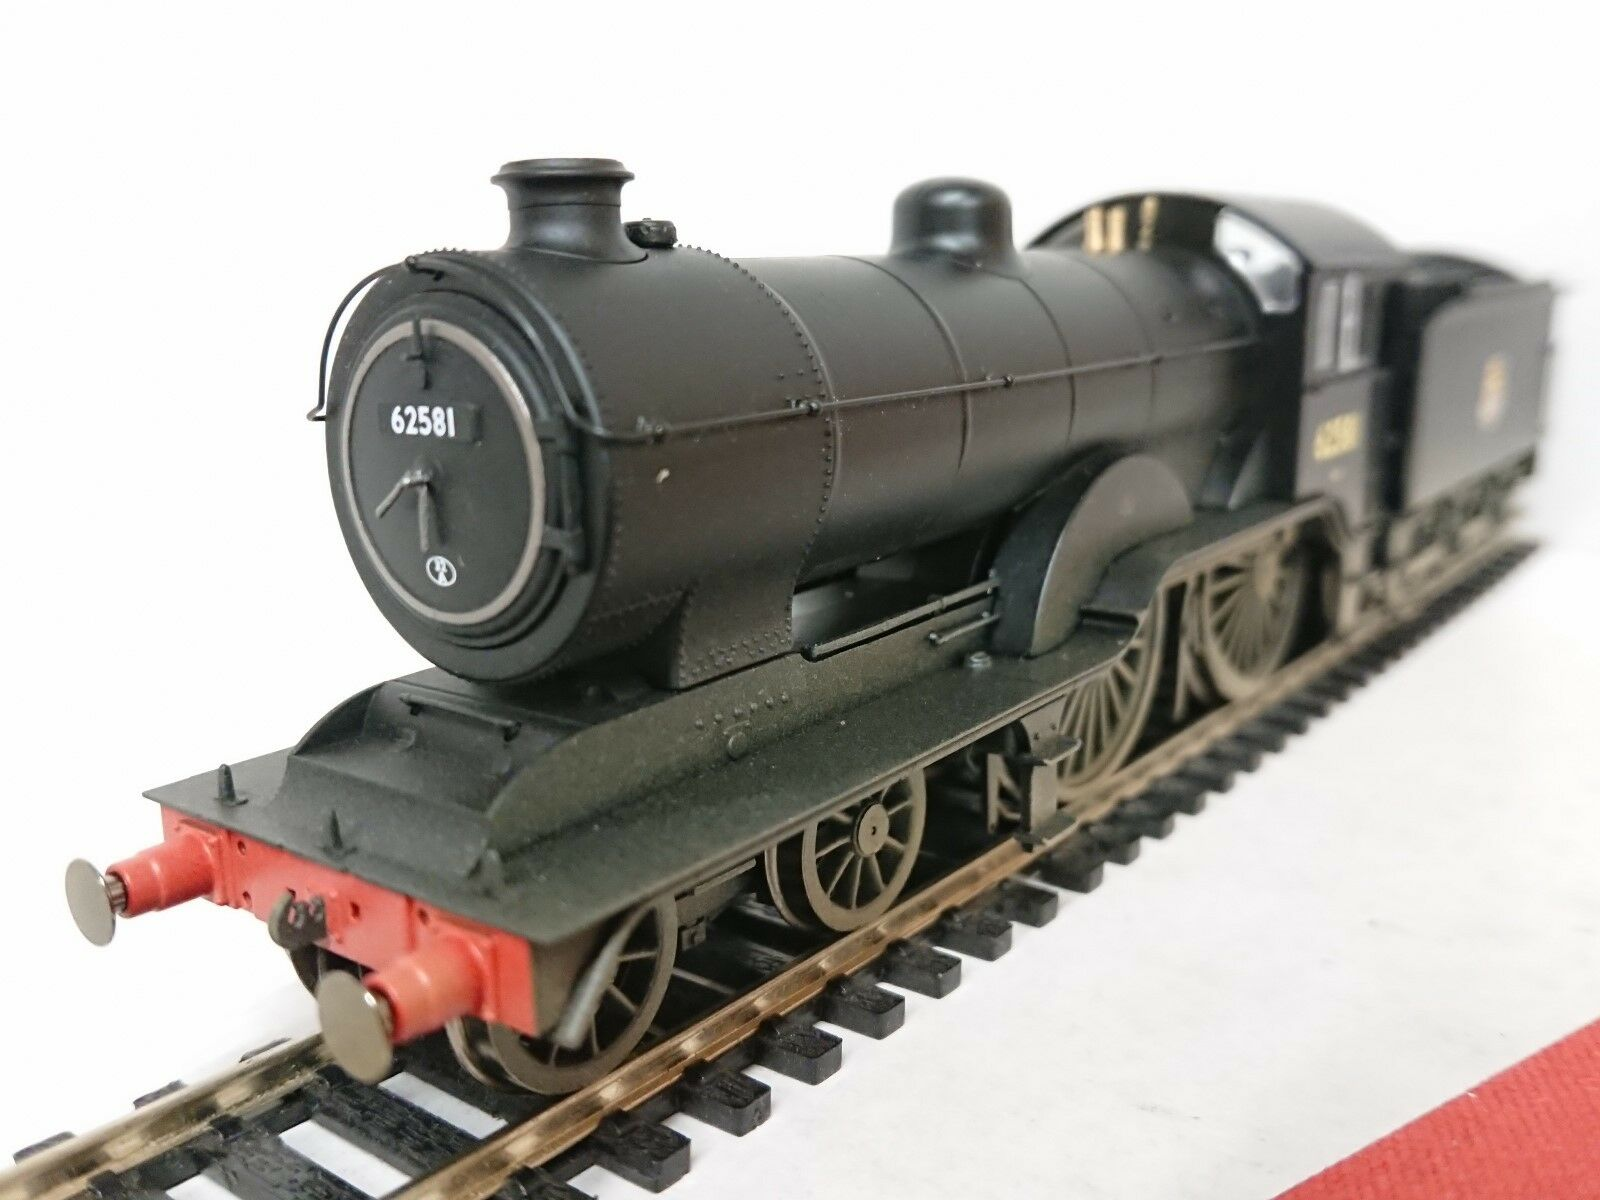 Hornby R3303 BR (Early) 4-4-0 D16 3 No. 62581 (Weathered) DCC Ready